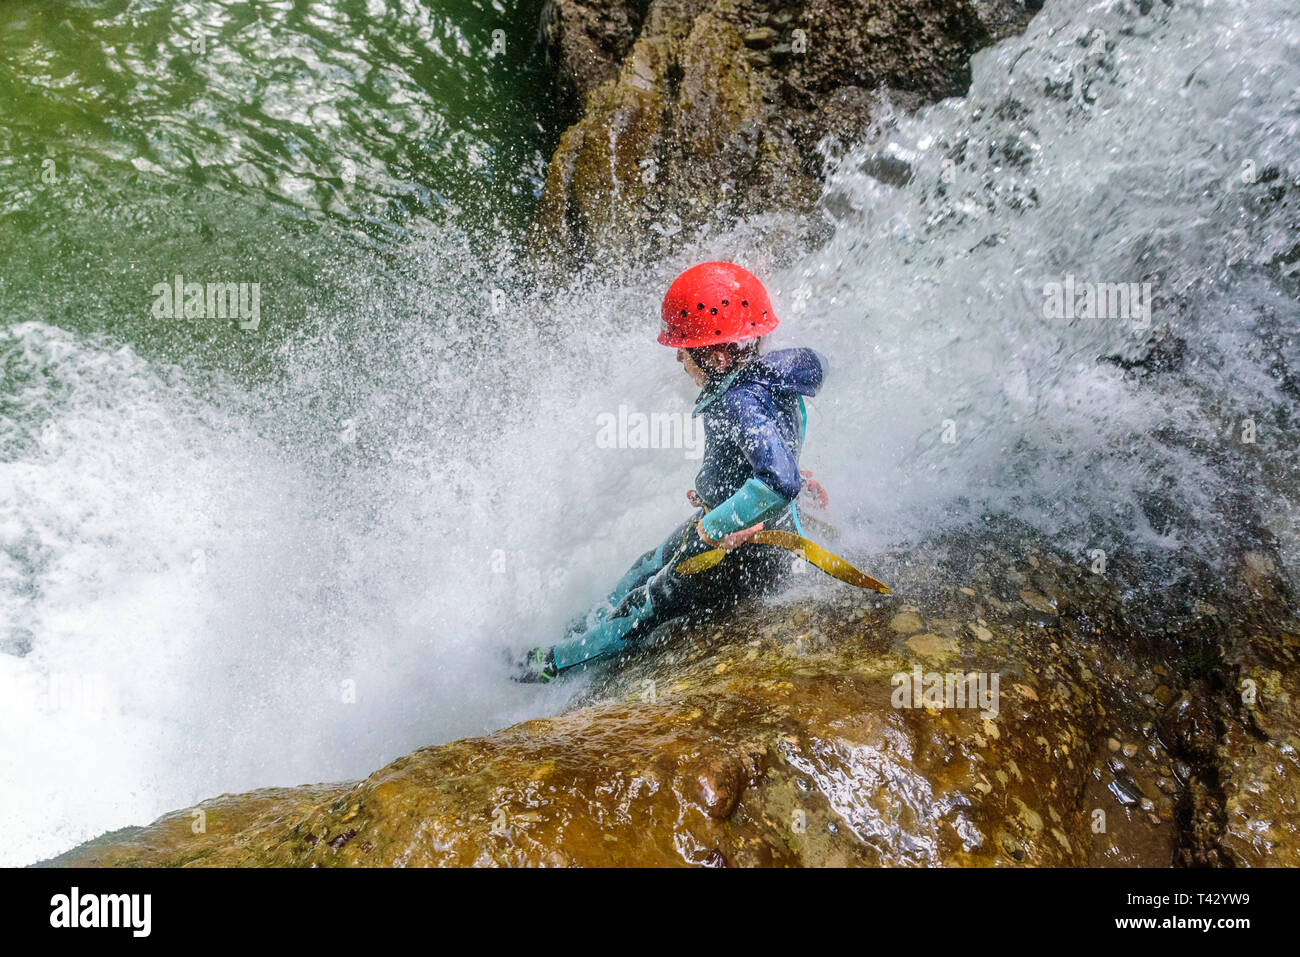 Canyoning - boy sliding on rocks in waterfall - Stock Image